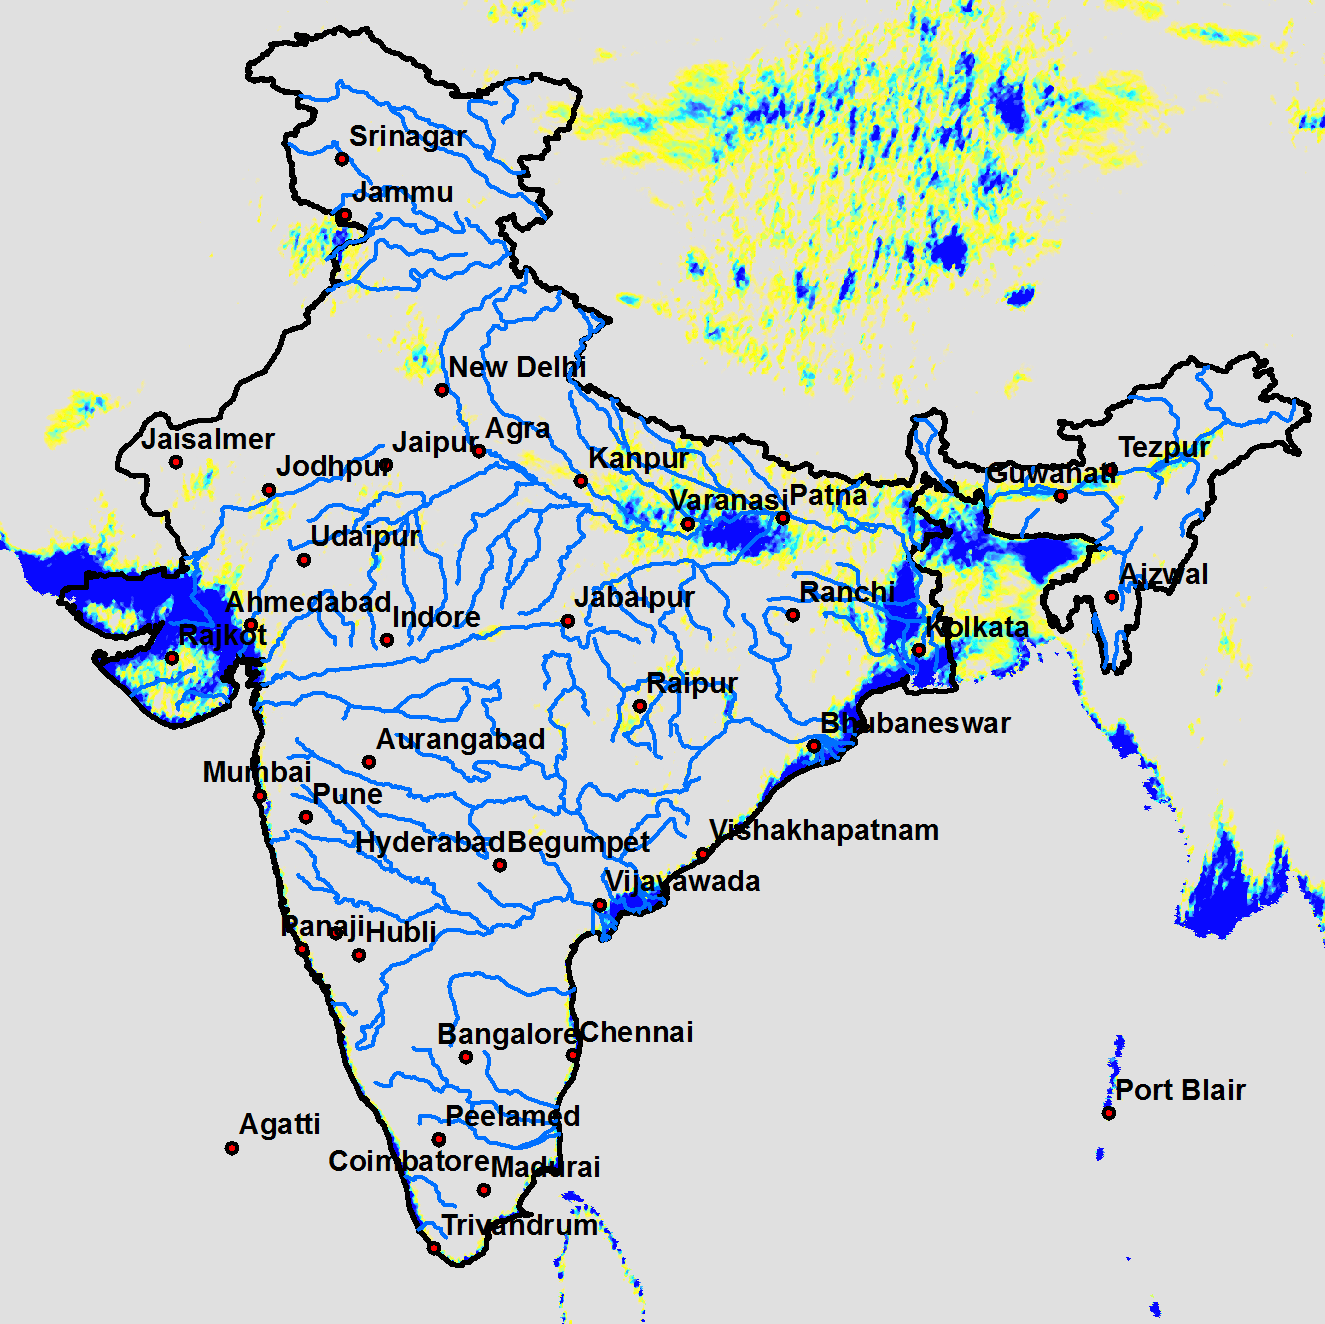 SCATSAT-1 based inundation pattern over India during 24-26 July 2017